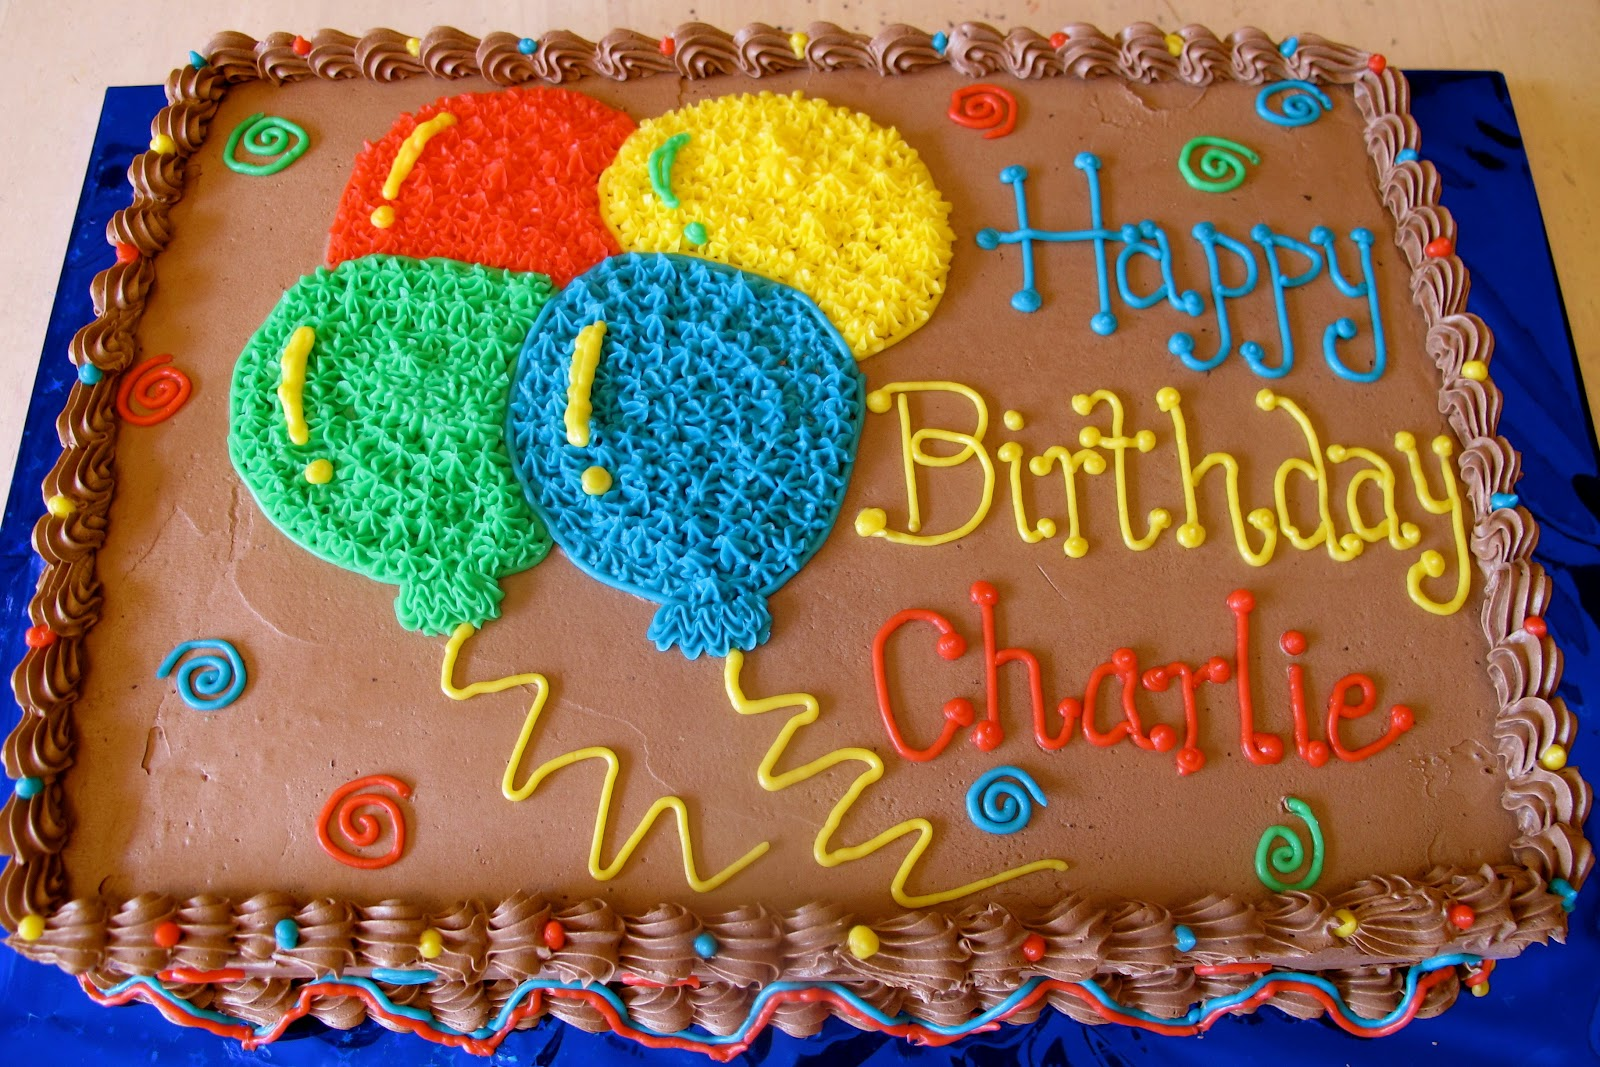 Birthday Cake Decorated With Balloons : Tortelicious: Balloon Birthday Cake & Cake of The Week ...